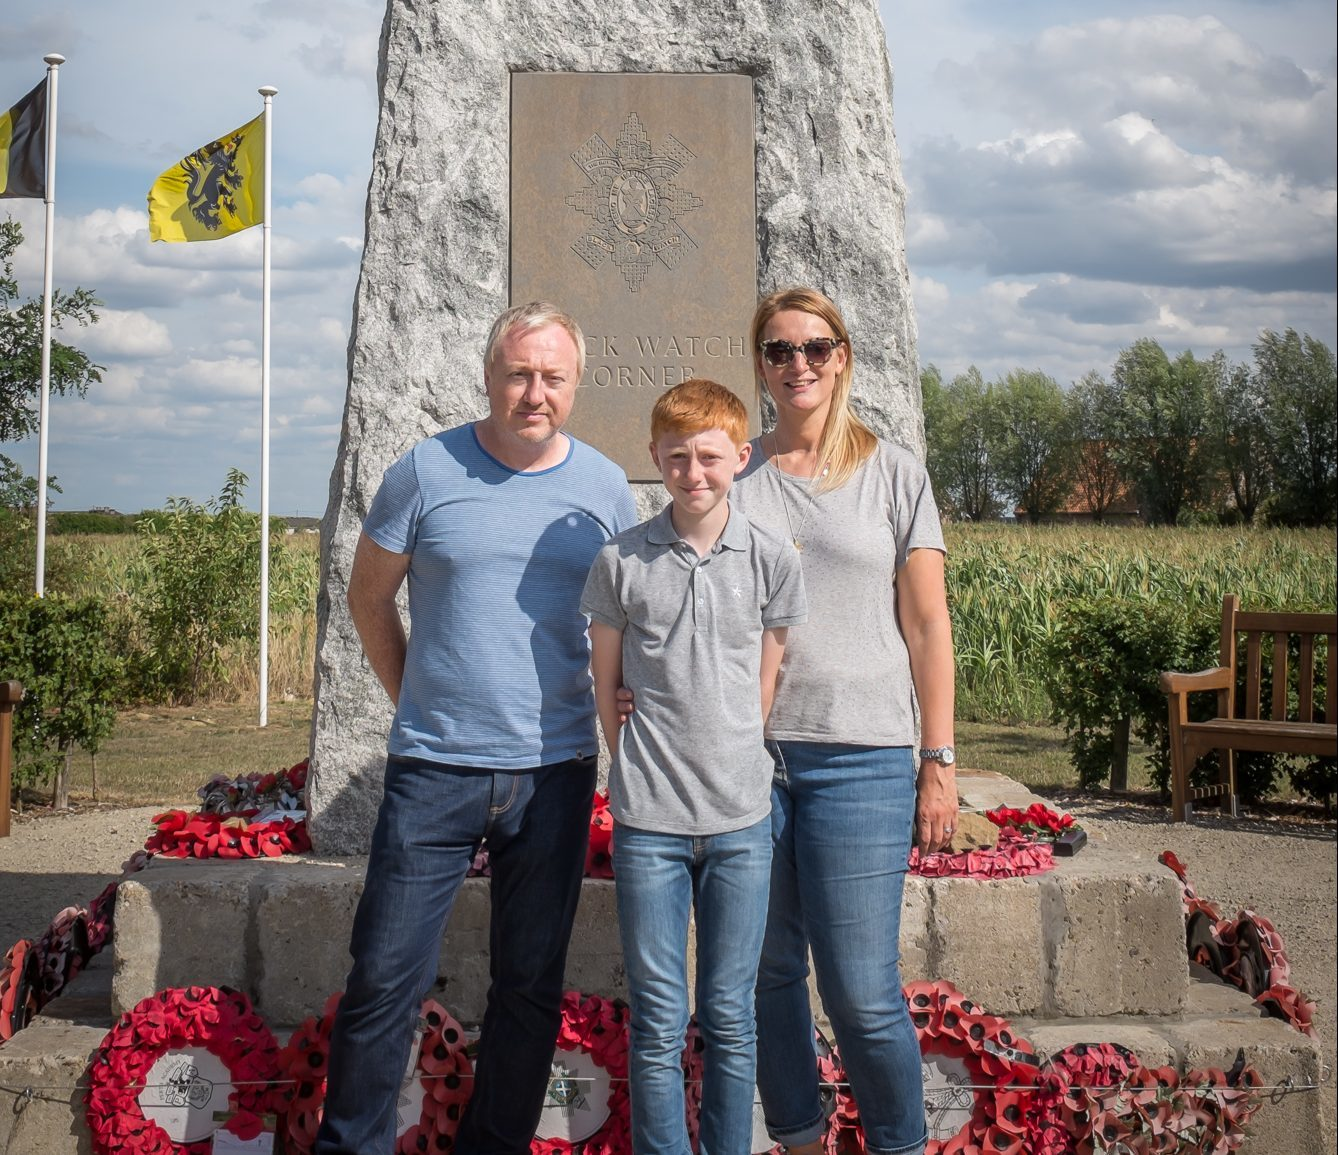 Sara and her family have visited Belgium to learn more of William's sacrifice.